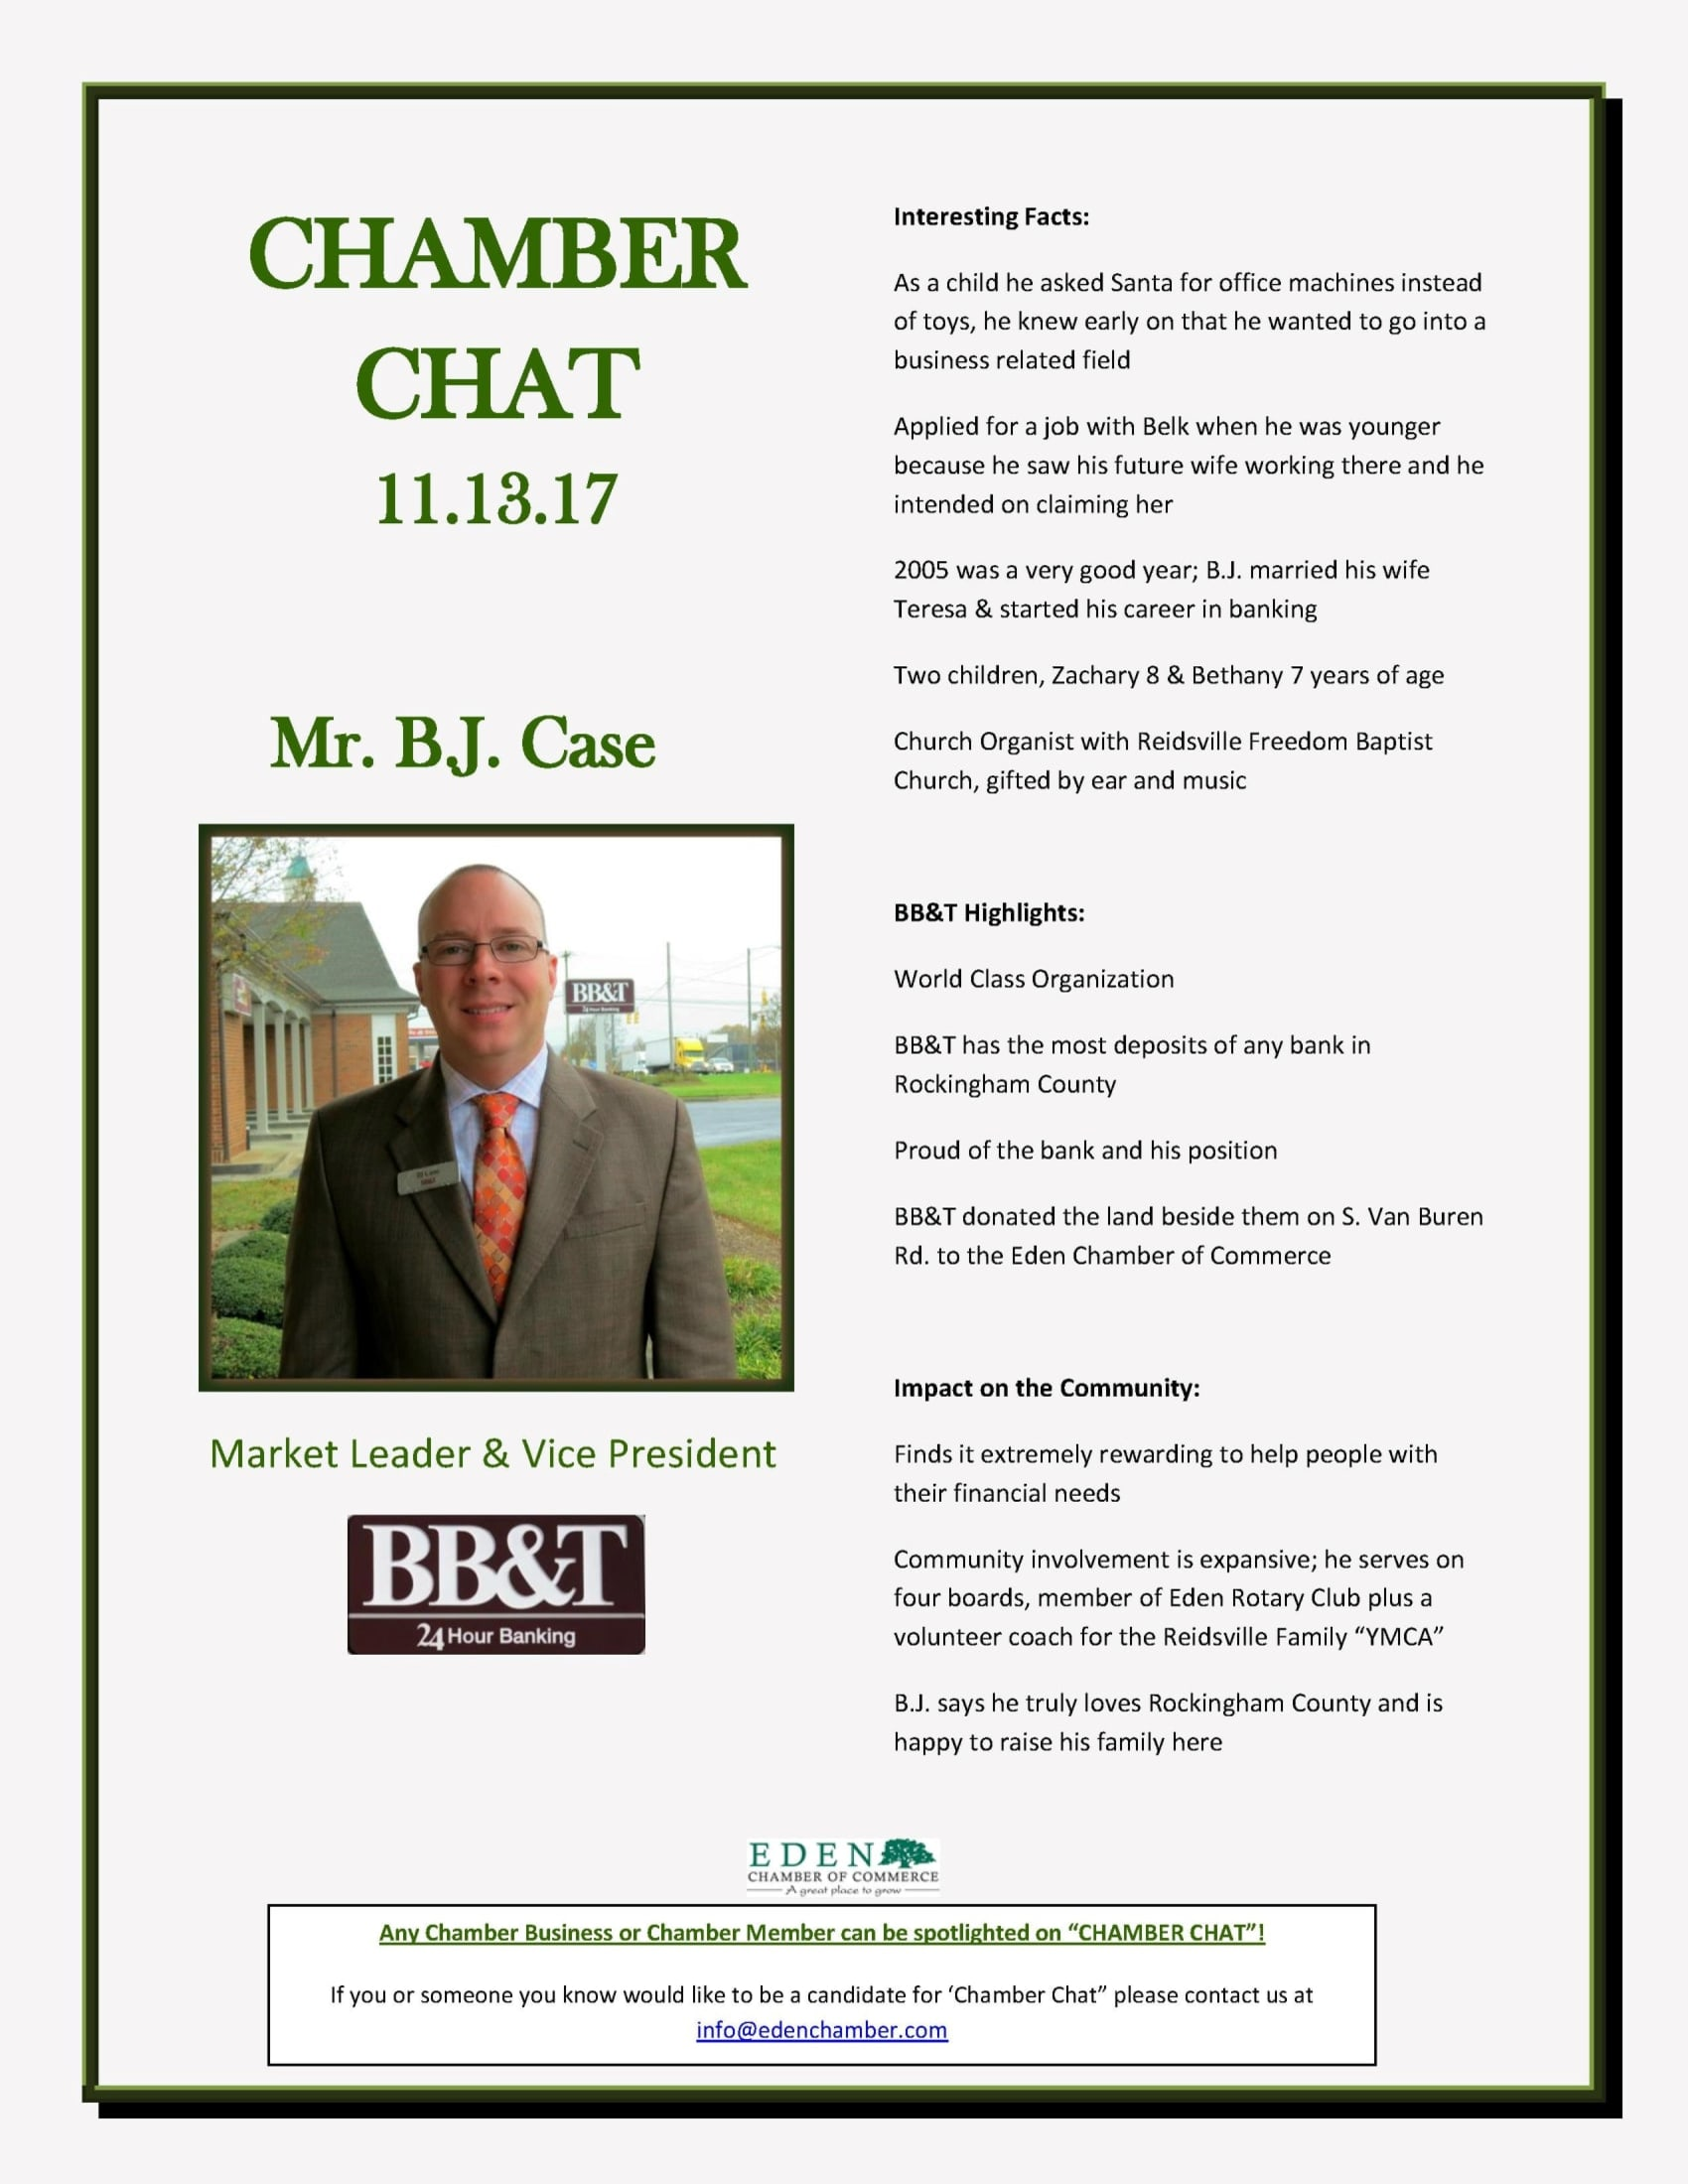 CHAMBER-CHAT-BJ-Case-11.13.17-w1700-w1700